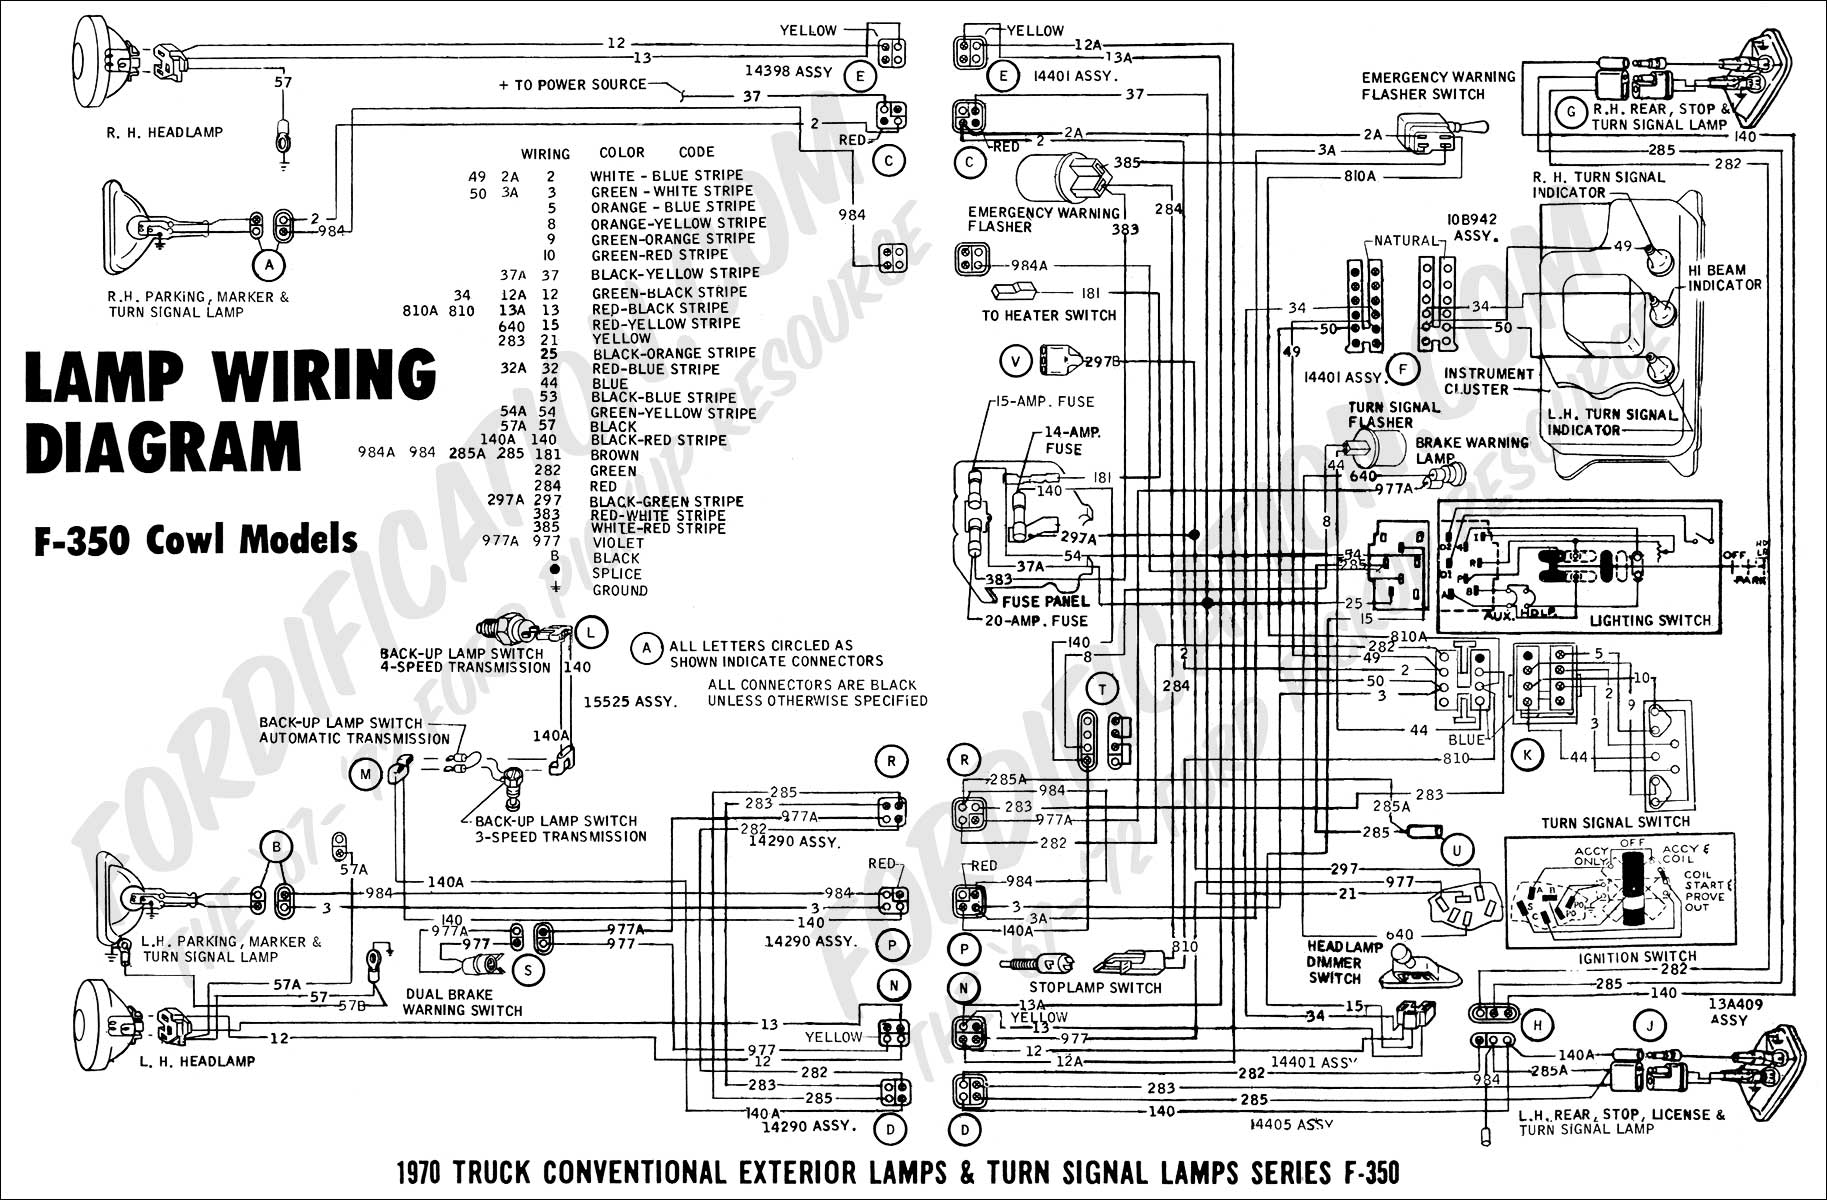 F350 Wiring Schematics - Data Wiring Diagrams on 03 taurus wiring diagram, 03 expedition wiring diagram, 03 trailblazer wiring diagram, ford fuel pump relay diagram, 03 f250 radio install, 03 f250 tires, 03 f150 wiring diagram, 03 tahoe wiring diagram, 03 ranger wiring diagram, 03 f250 oil cooler, 03 malibu wiring diagram, 03 f250 neutral safety switch, 03 f250 voltage regulator, 03 silverado wiring diagram, 03 durango wiring diagram,